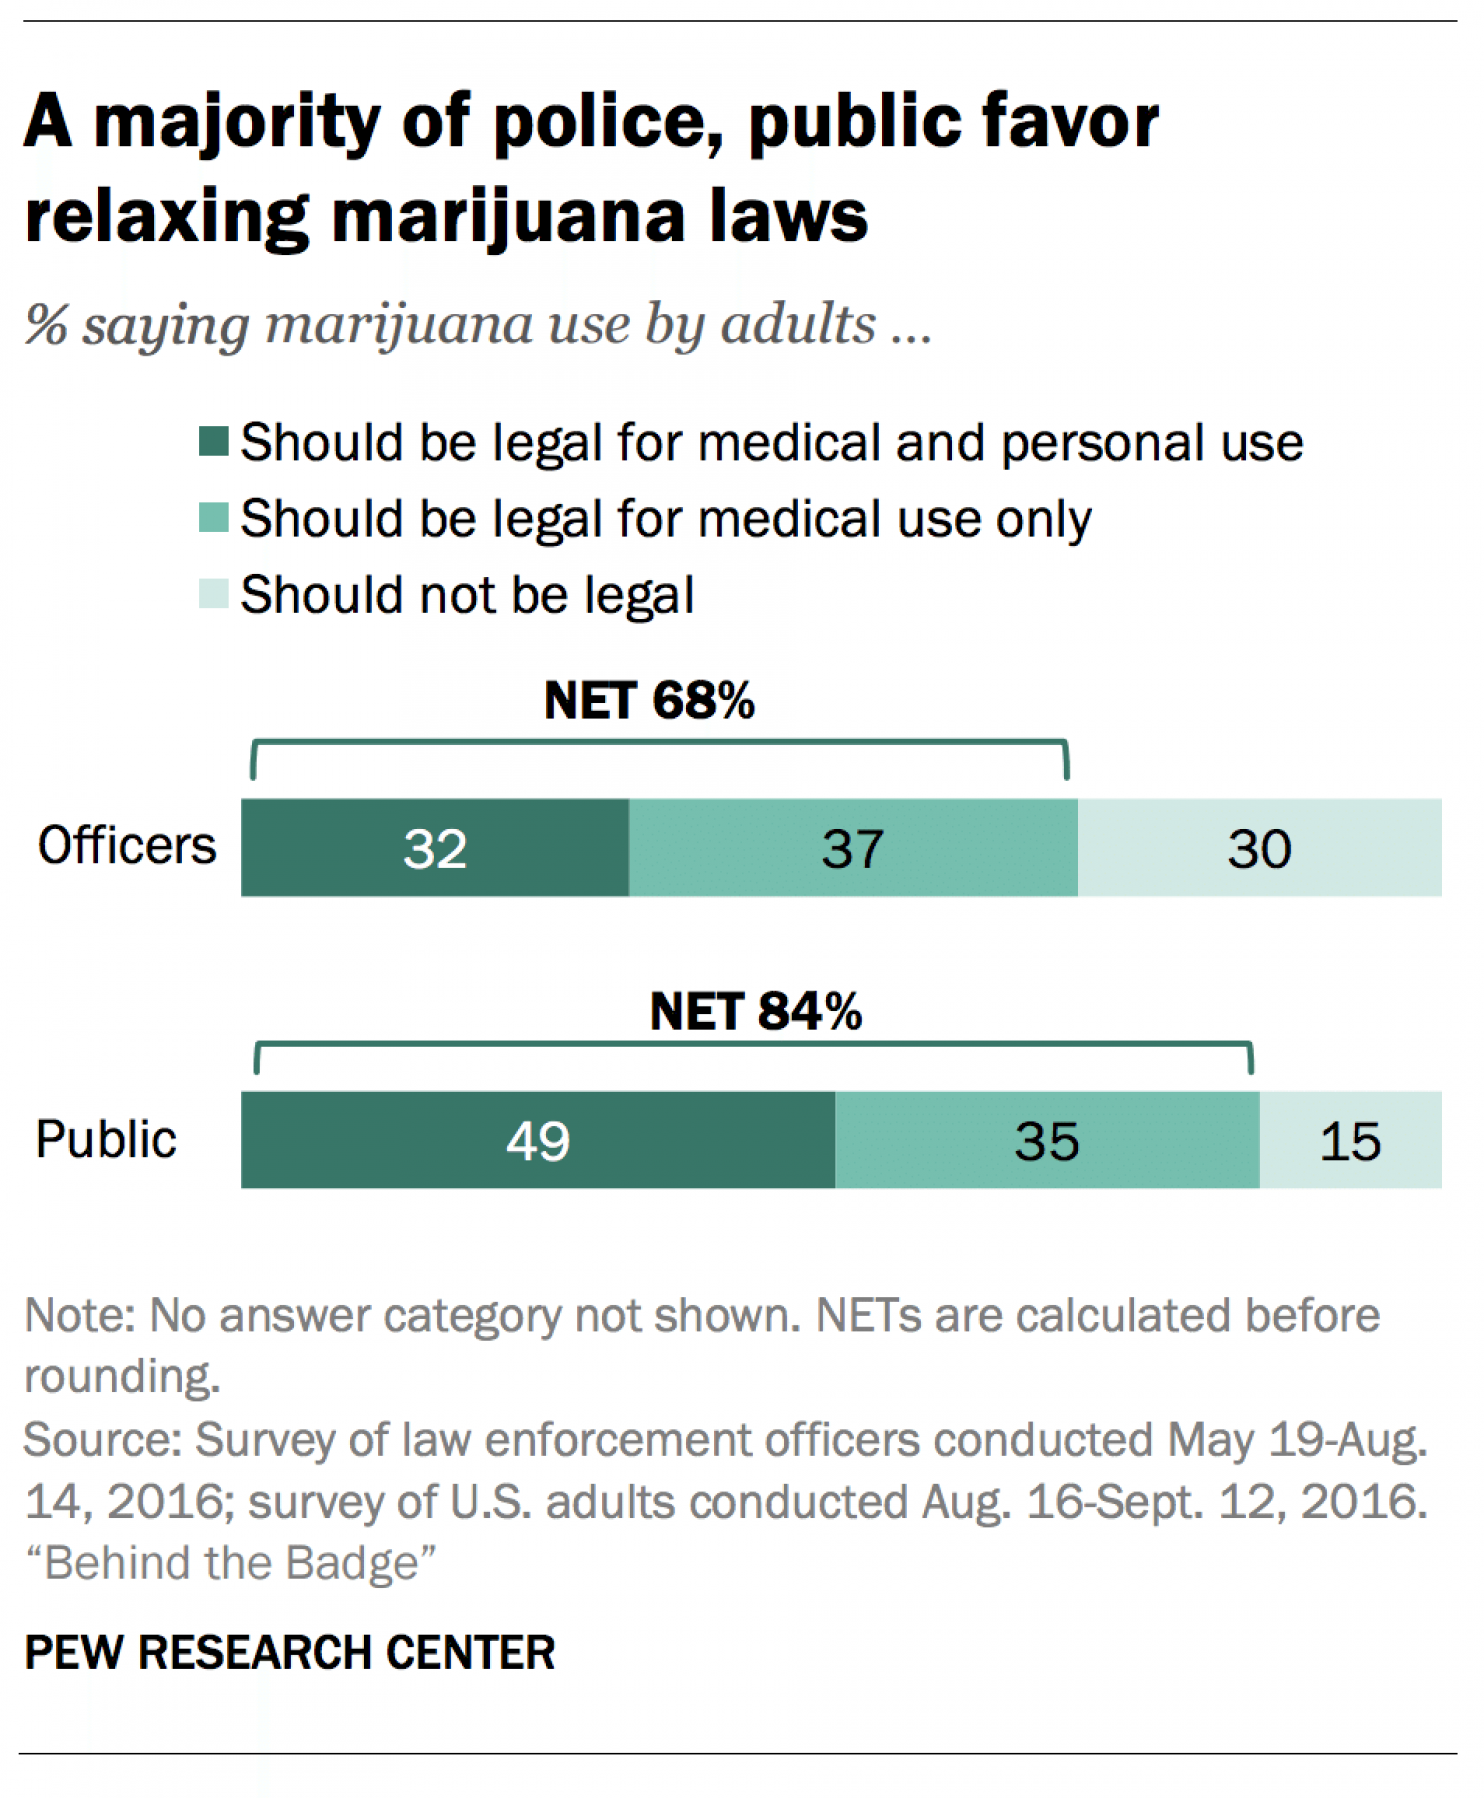 Pew research centre police poll